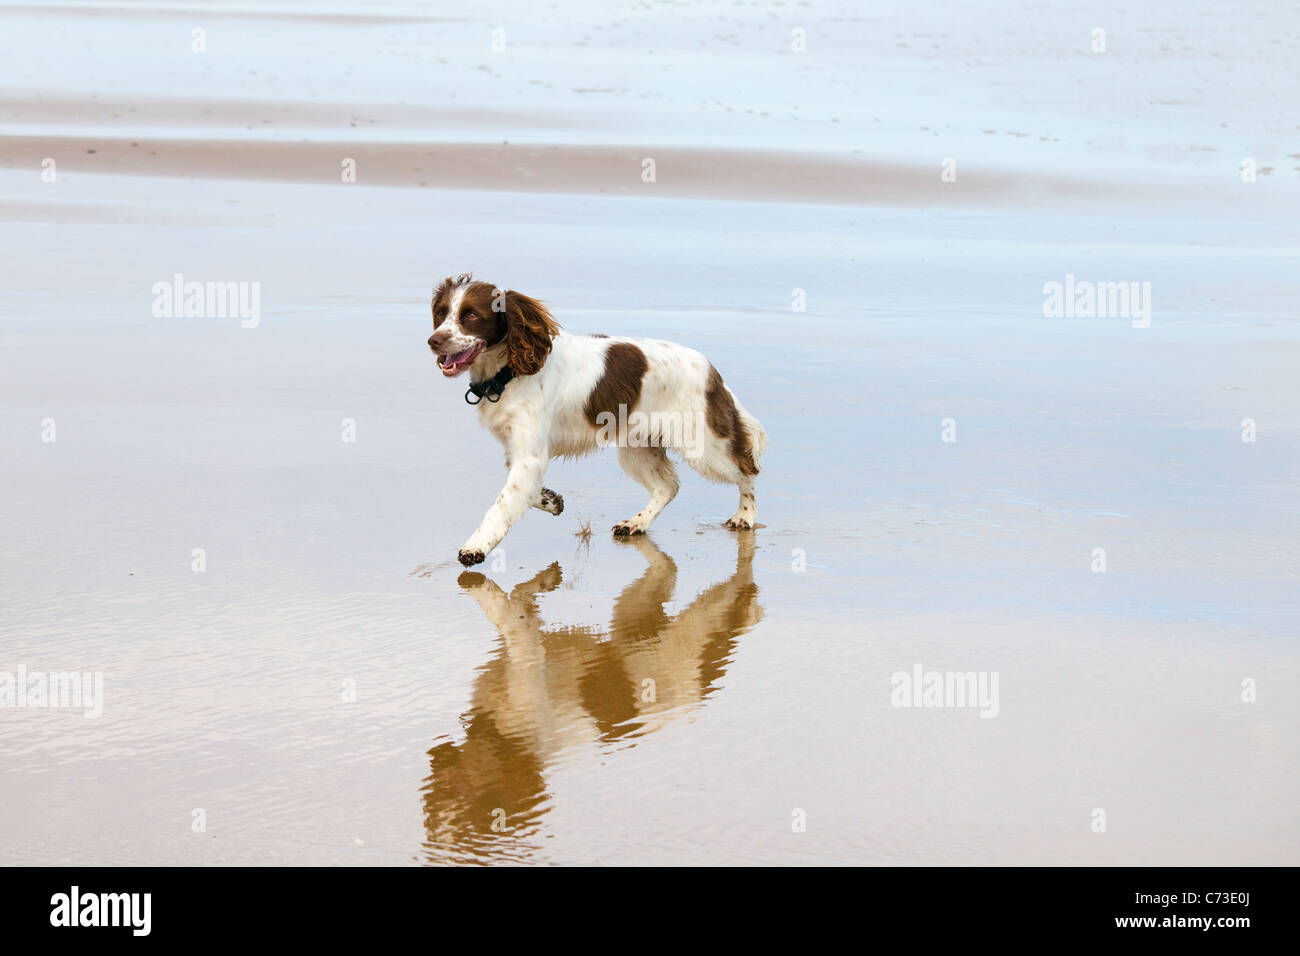 English Springer Spaniel chasing ball on beach Stock Photo